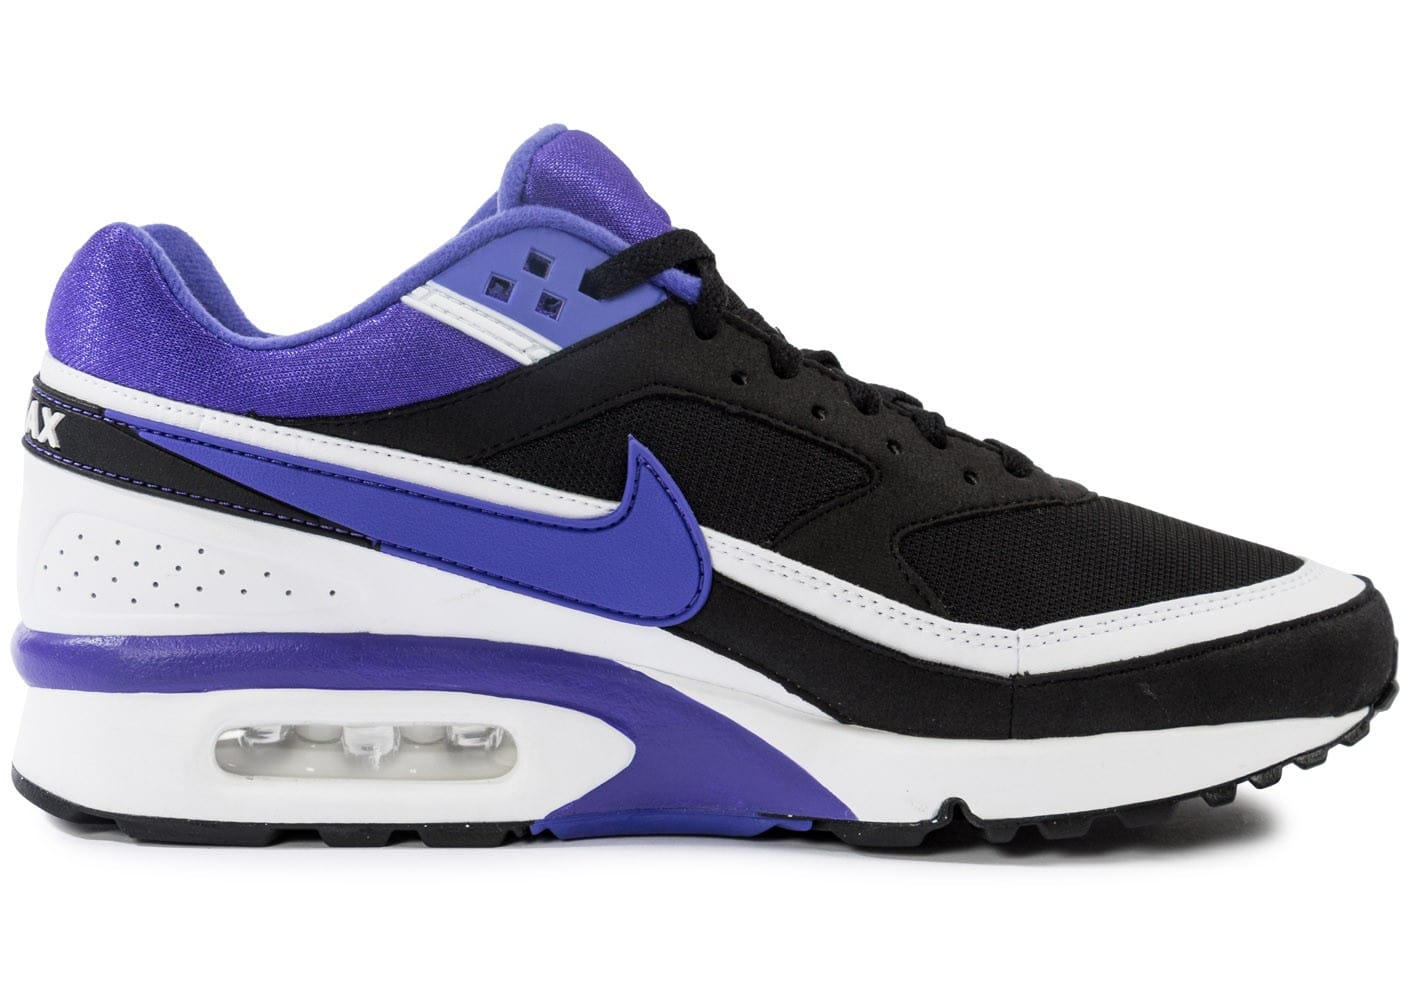 soldes nike air max bw og persian violet chaussures homme chausport. Black Bedroom Furniture Sets. Home Design Ideas